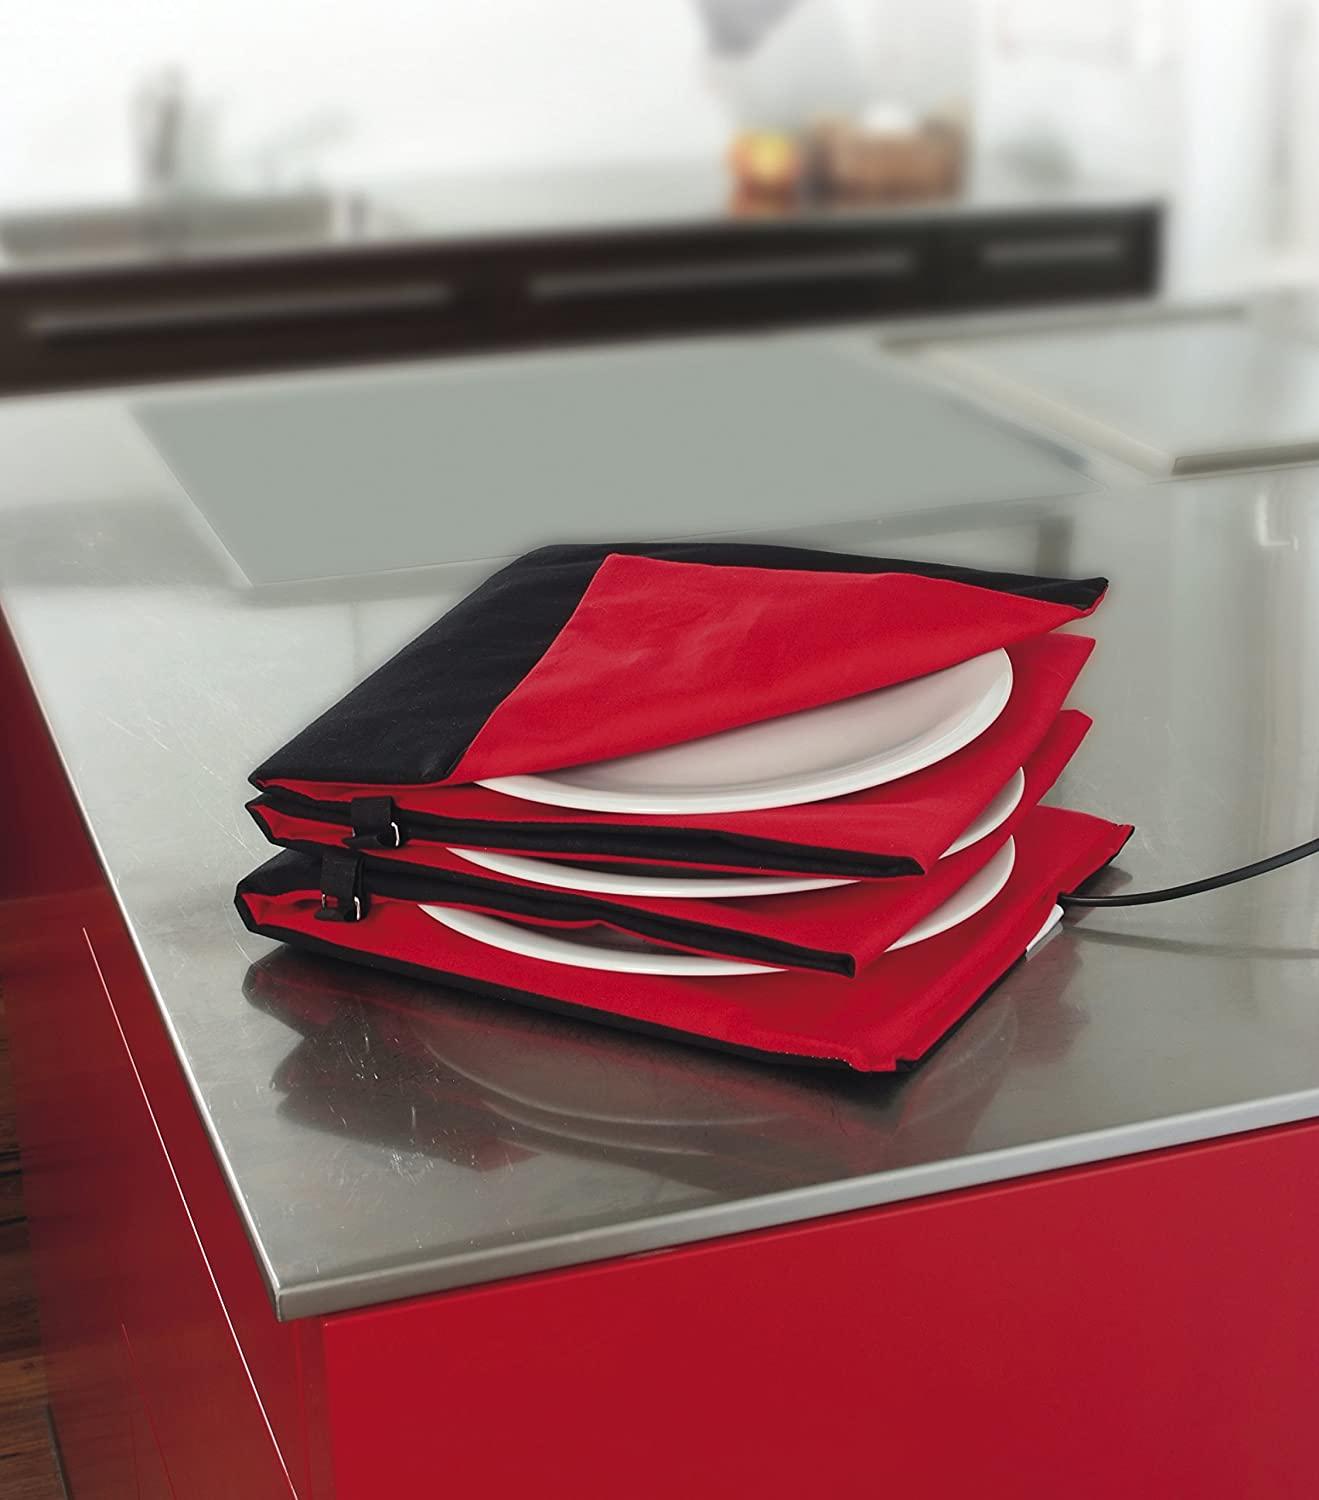 Solis Petit Electroménager 906.31 Chauffe Assiette King Size Rouge-anthrazit (Import Allemagne) Anthracite, Rouge